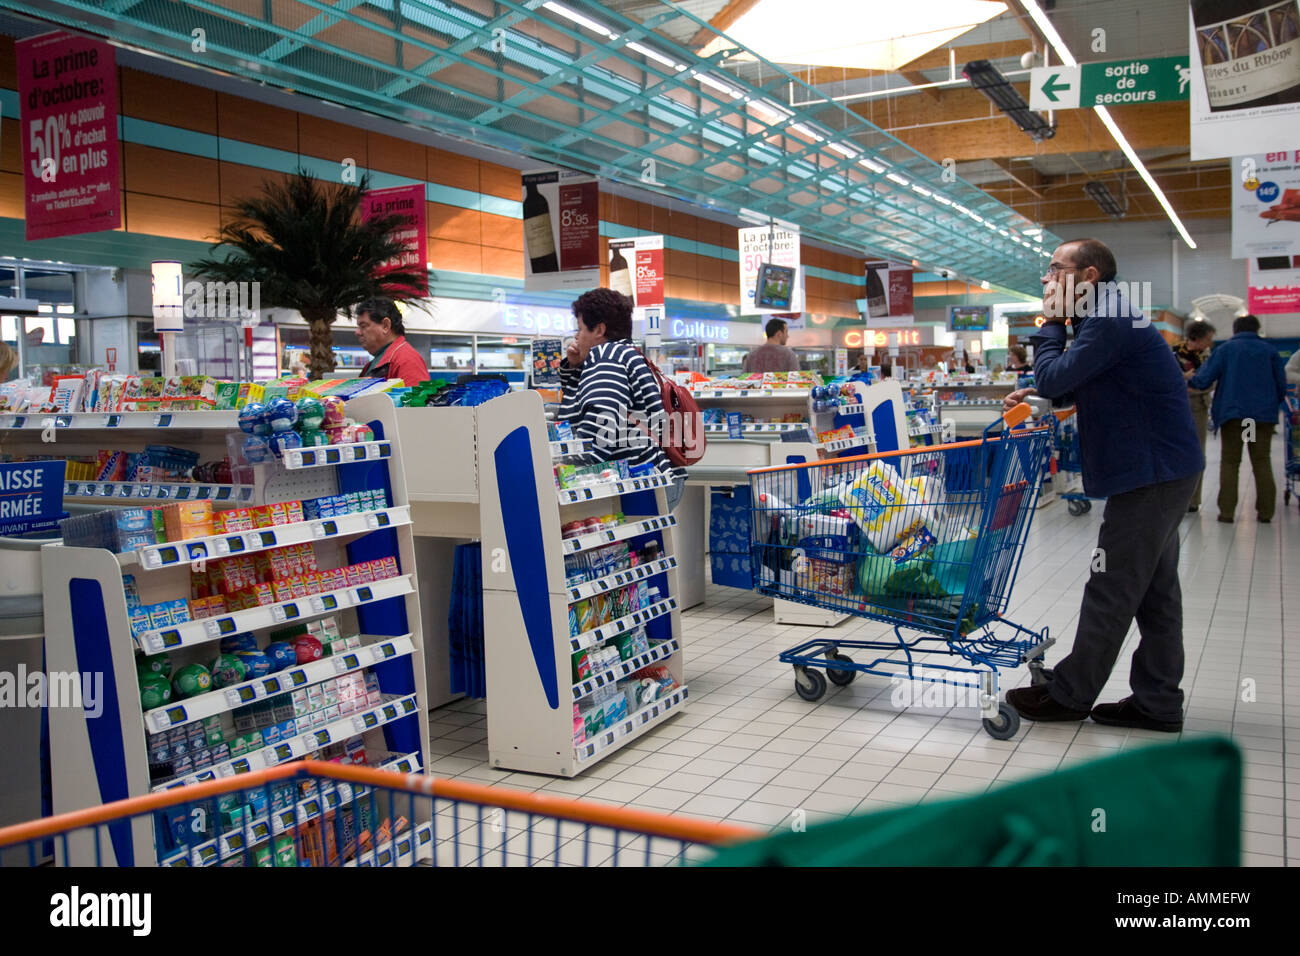 Customers waiting at checkout E Leclerc superstore Le Havre